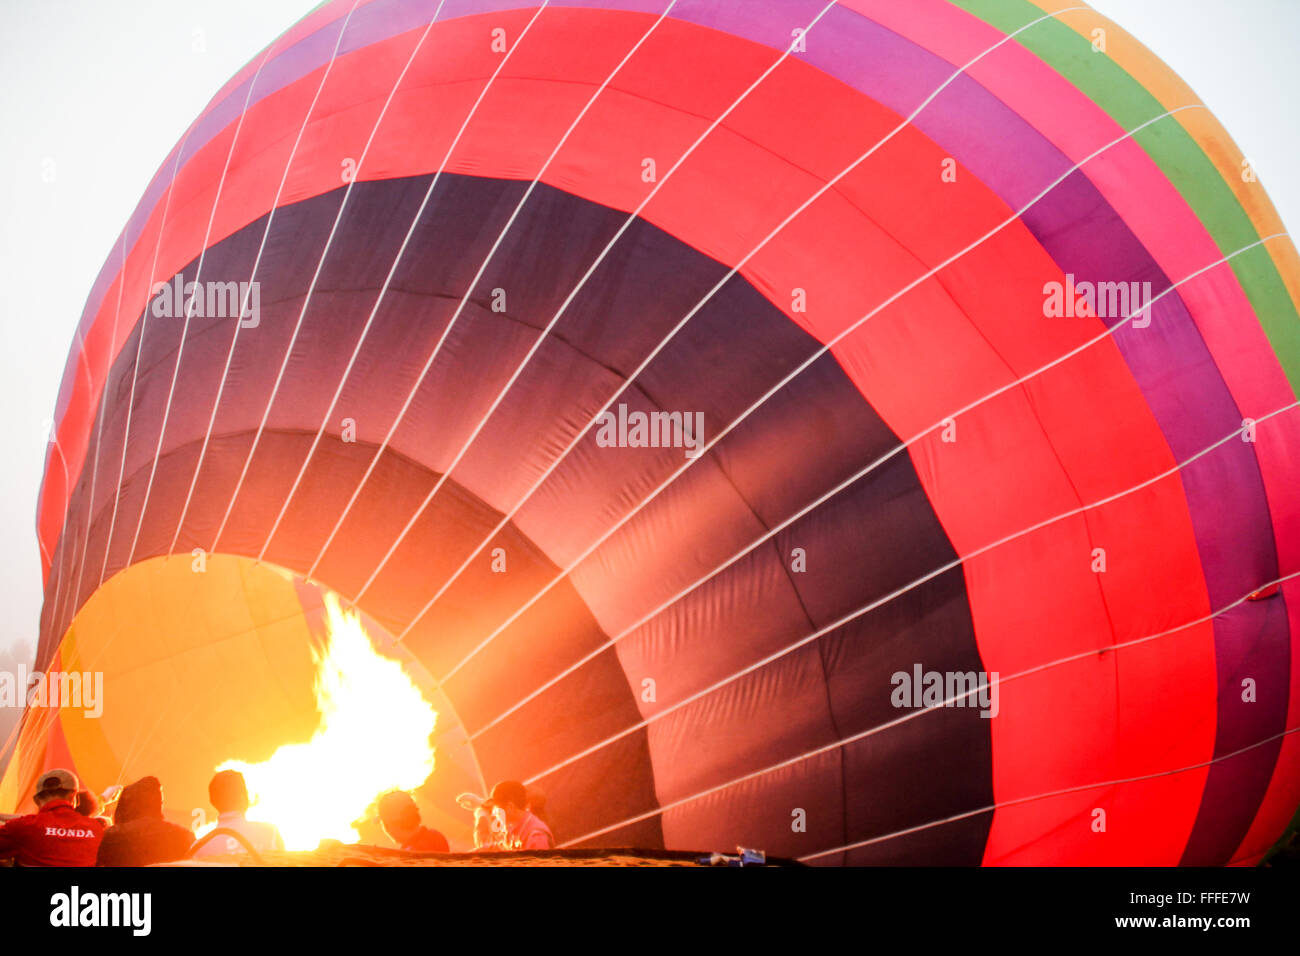 Inflating Hot Air Balloon Stock Photo